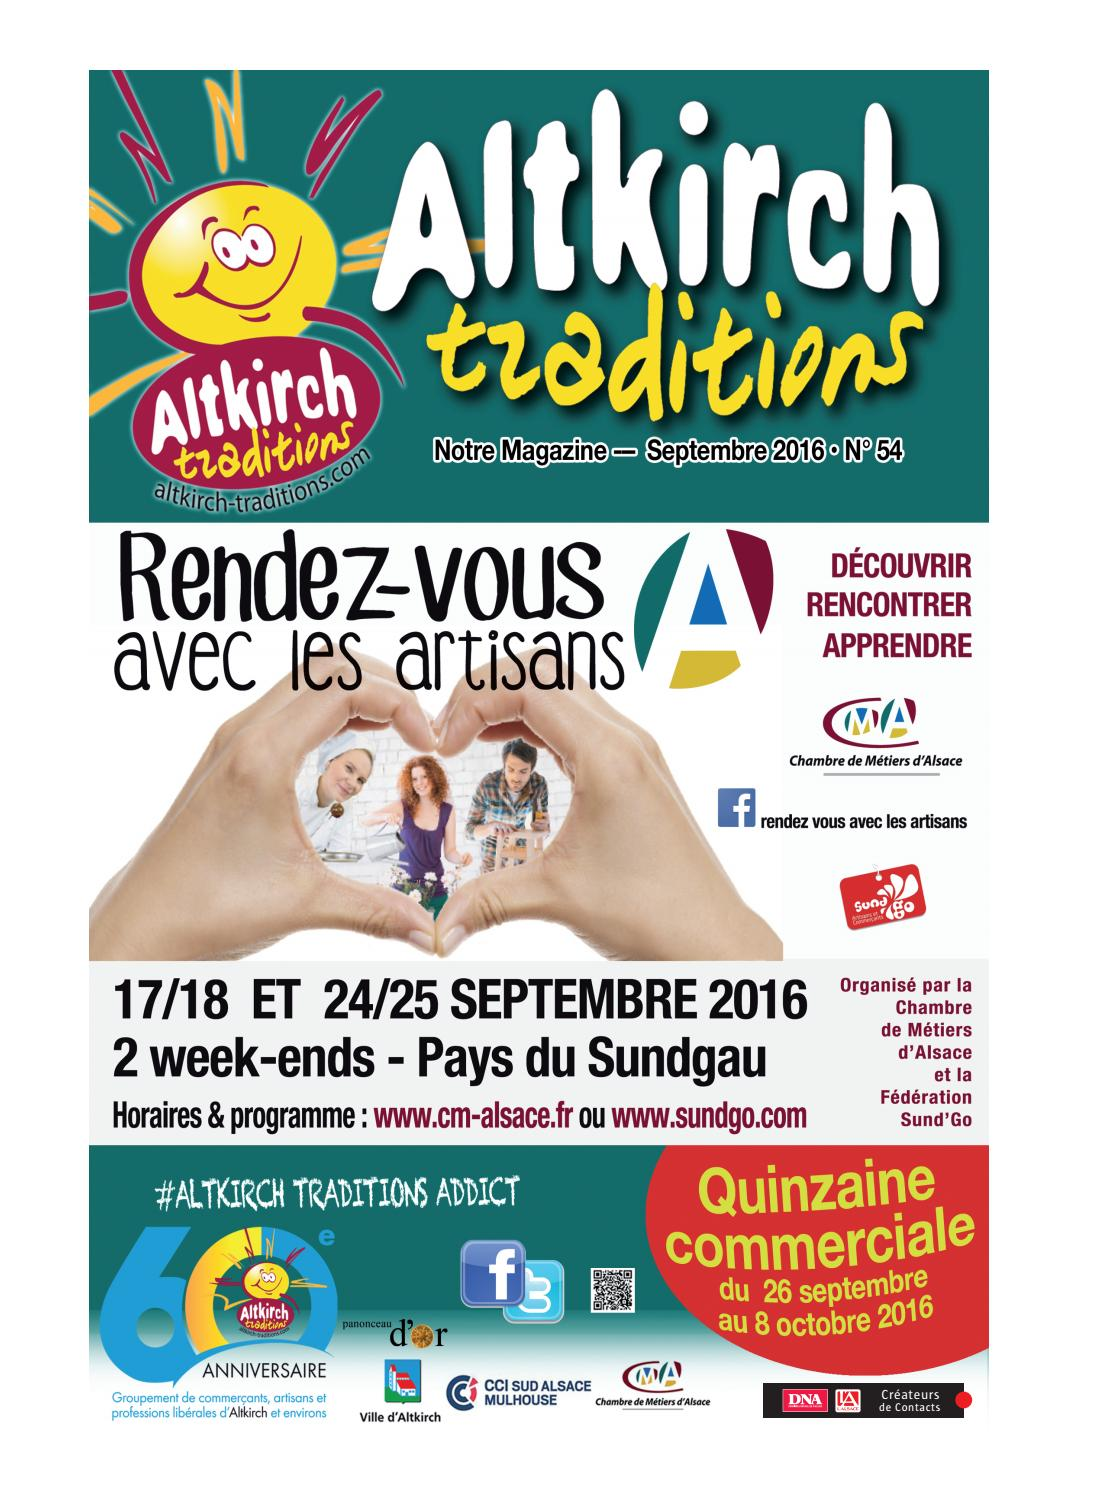 altkirch traditions septembre 2016 by républicain lorrain - issuu